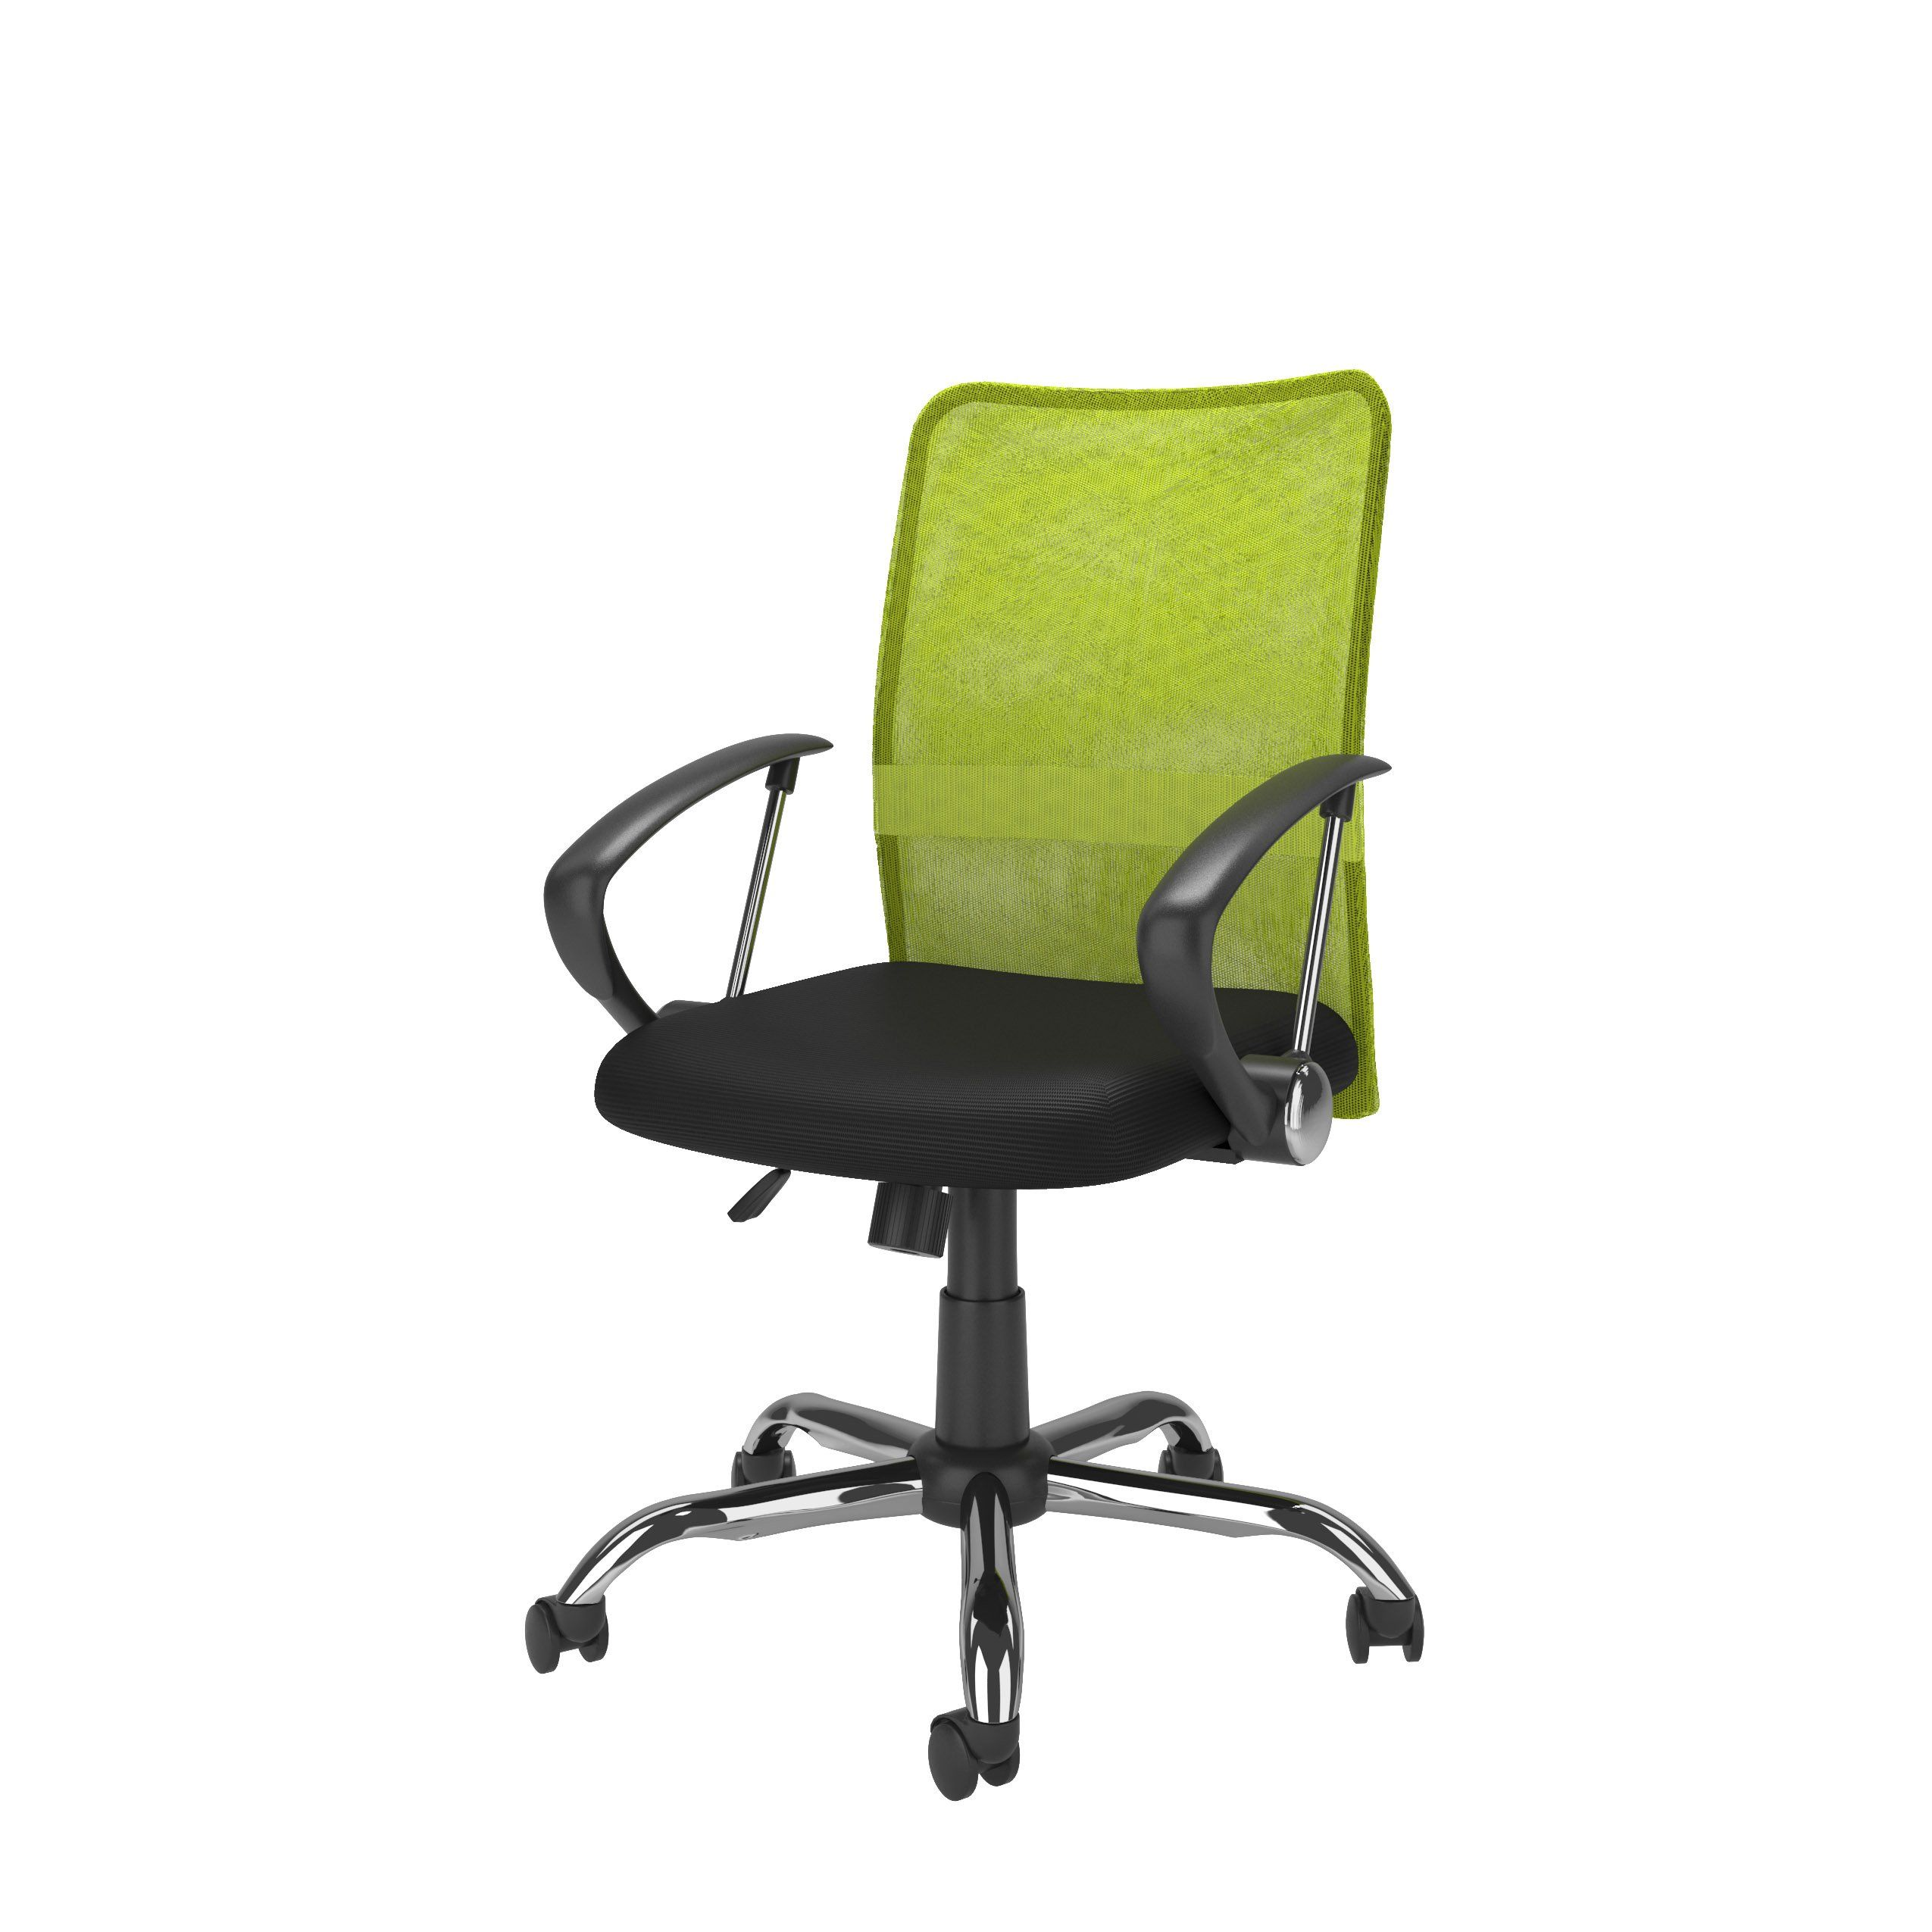 Lime Green and Black Mesh Office Chair - Workspace in 50  Black